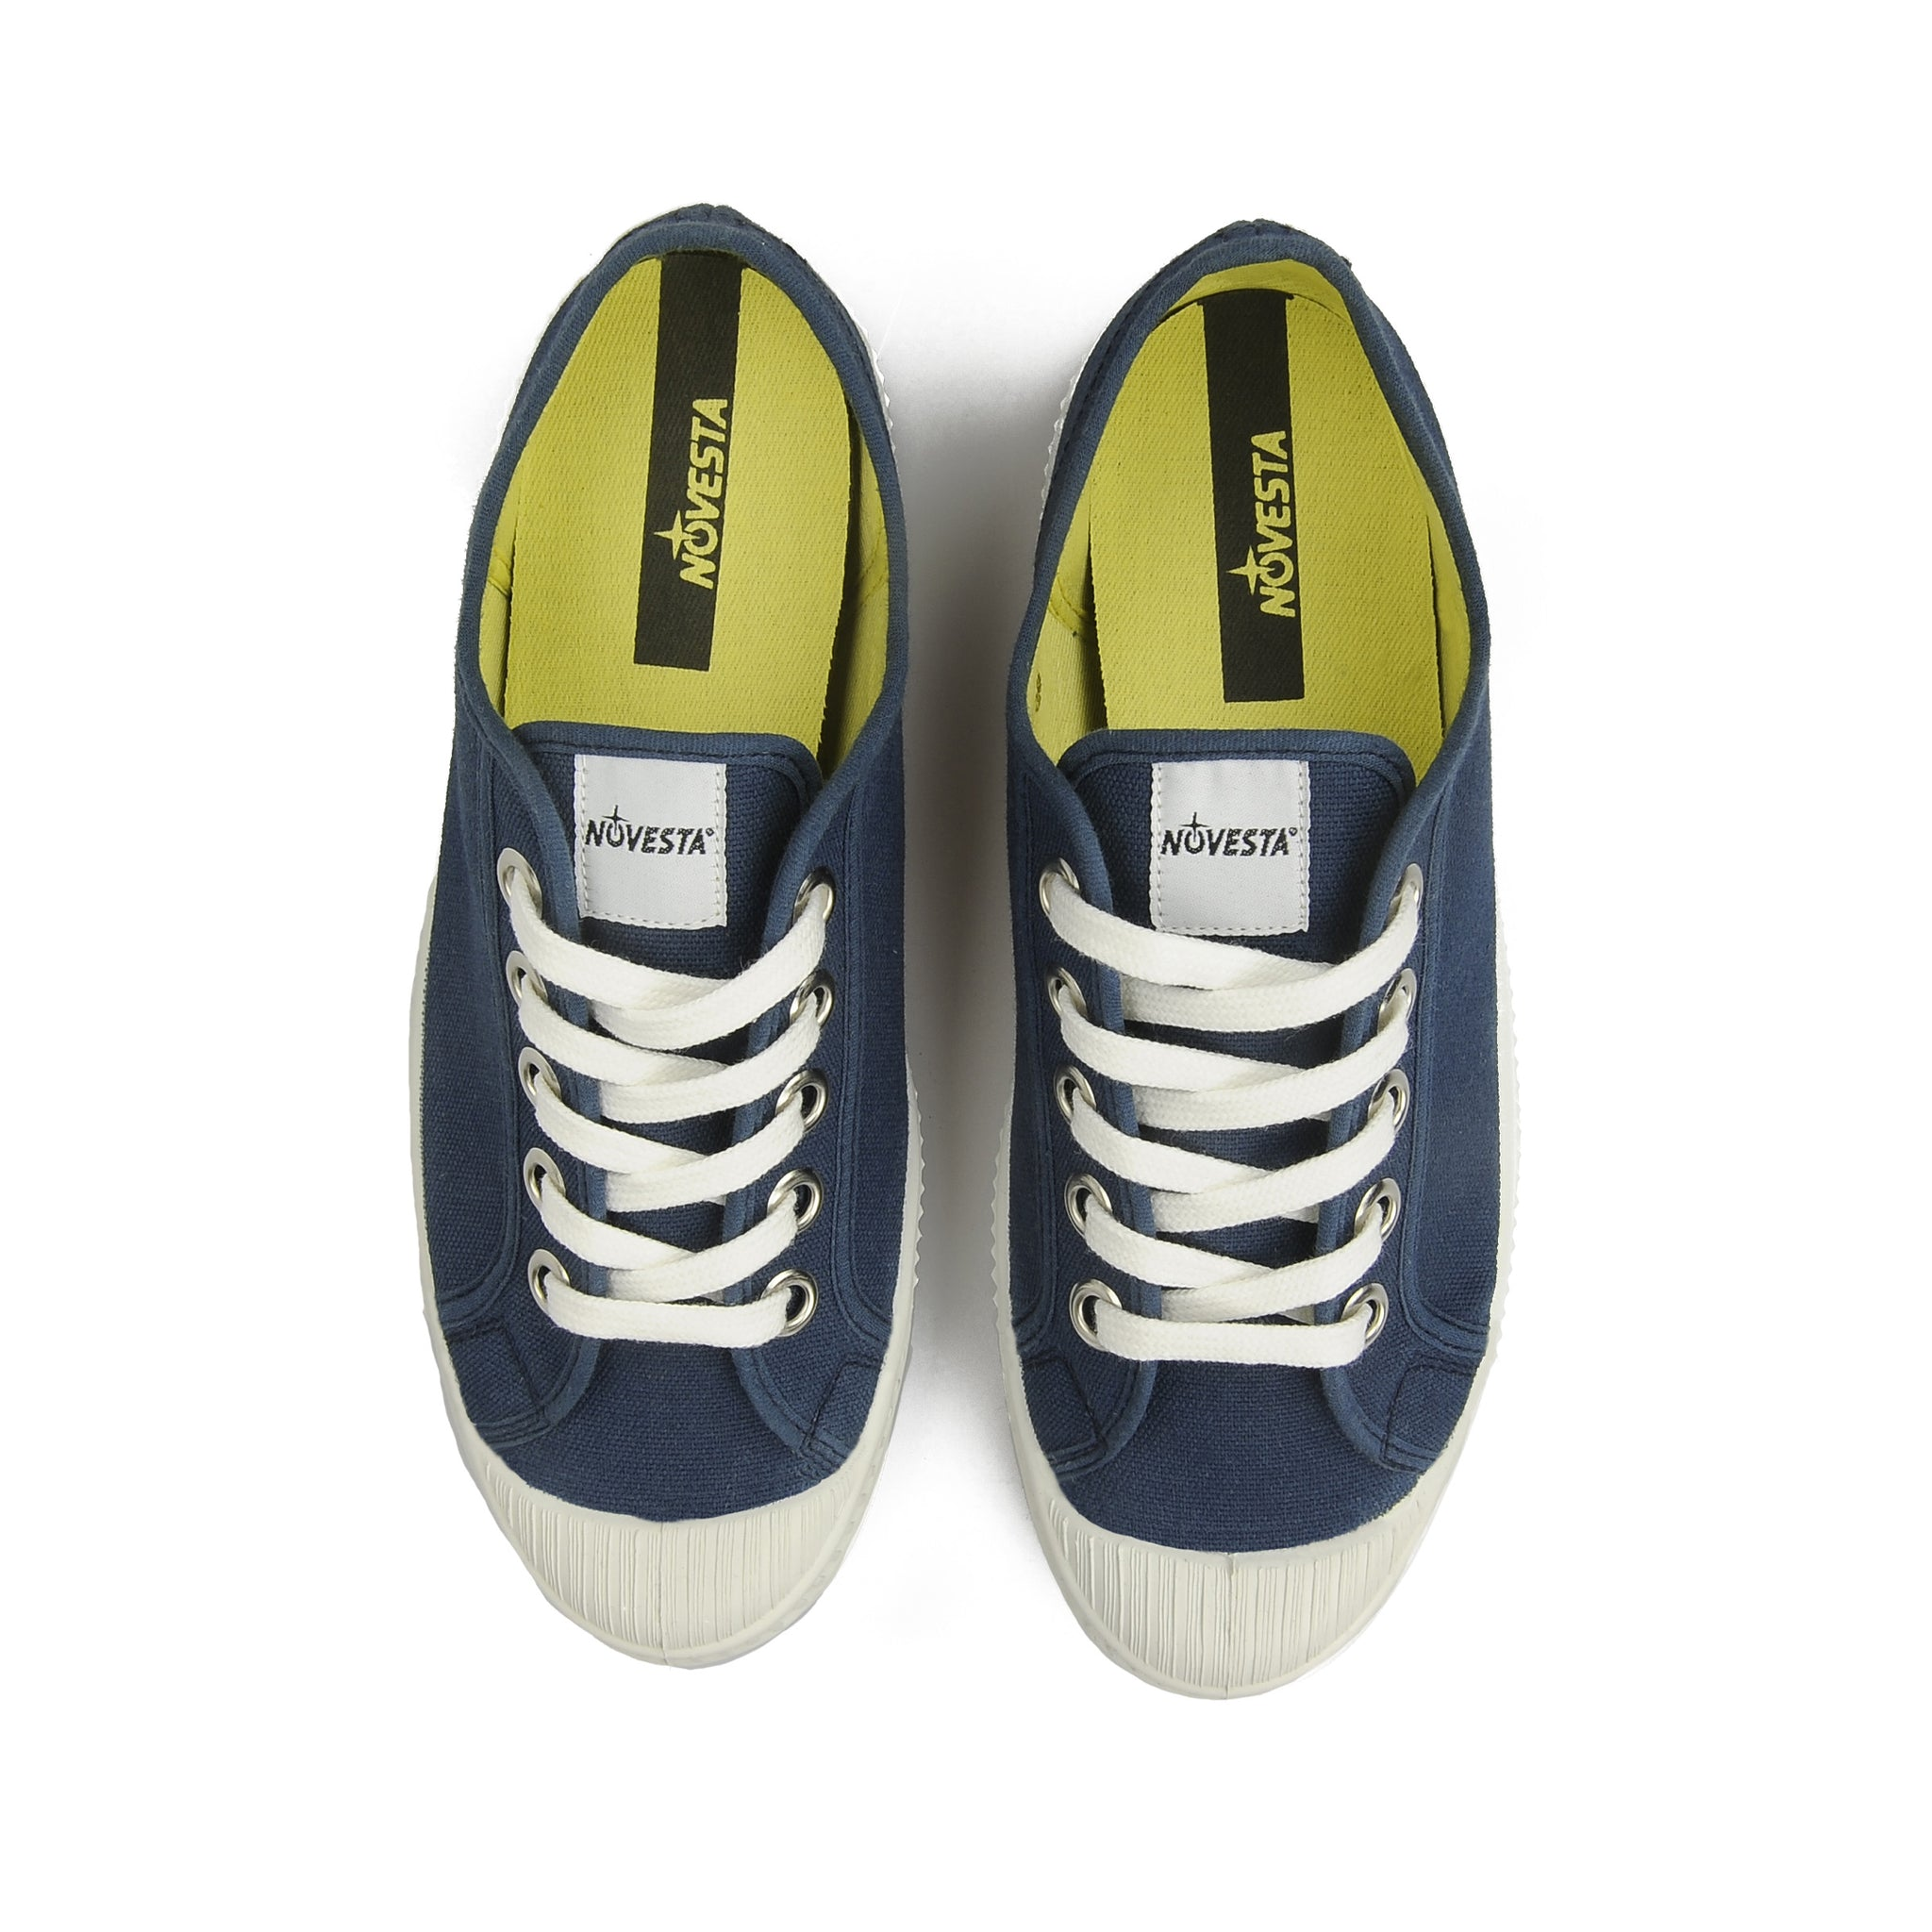 Novesta Star Master 91 Low Top Sneaker - India - Partisan, Parkhurst - aerial view